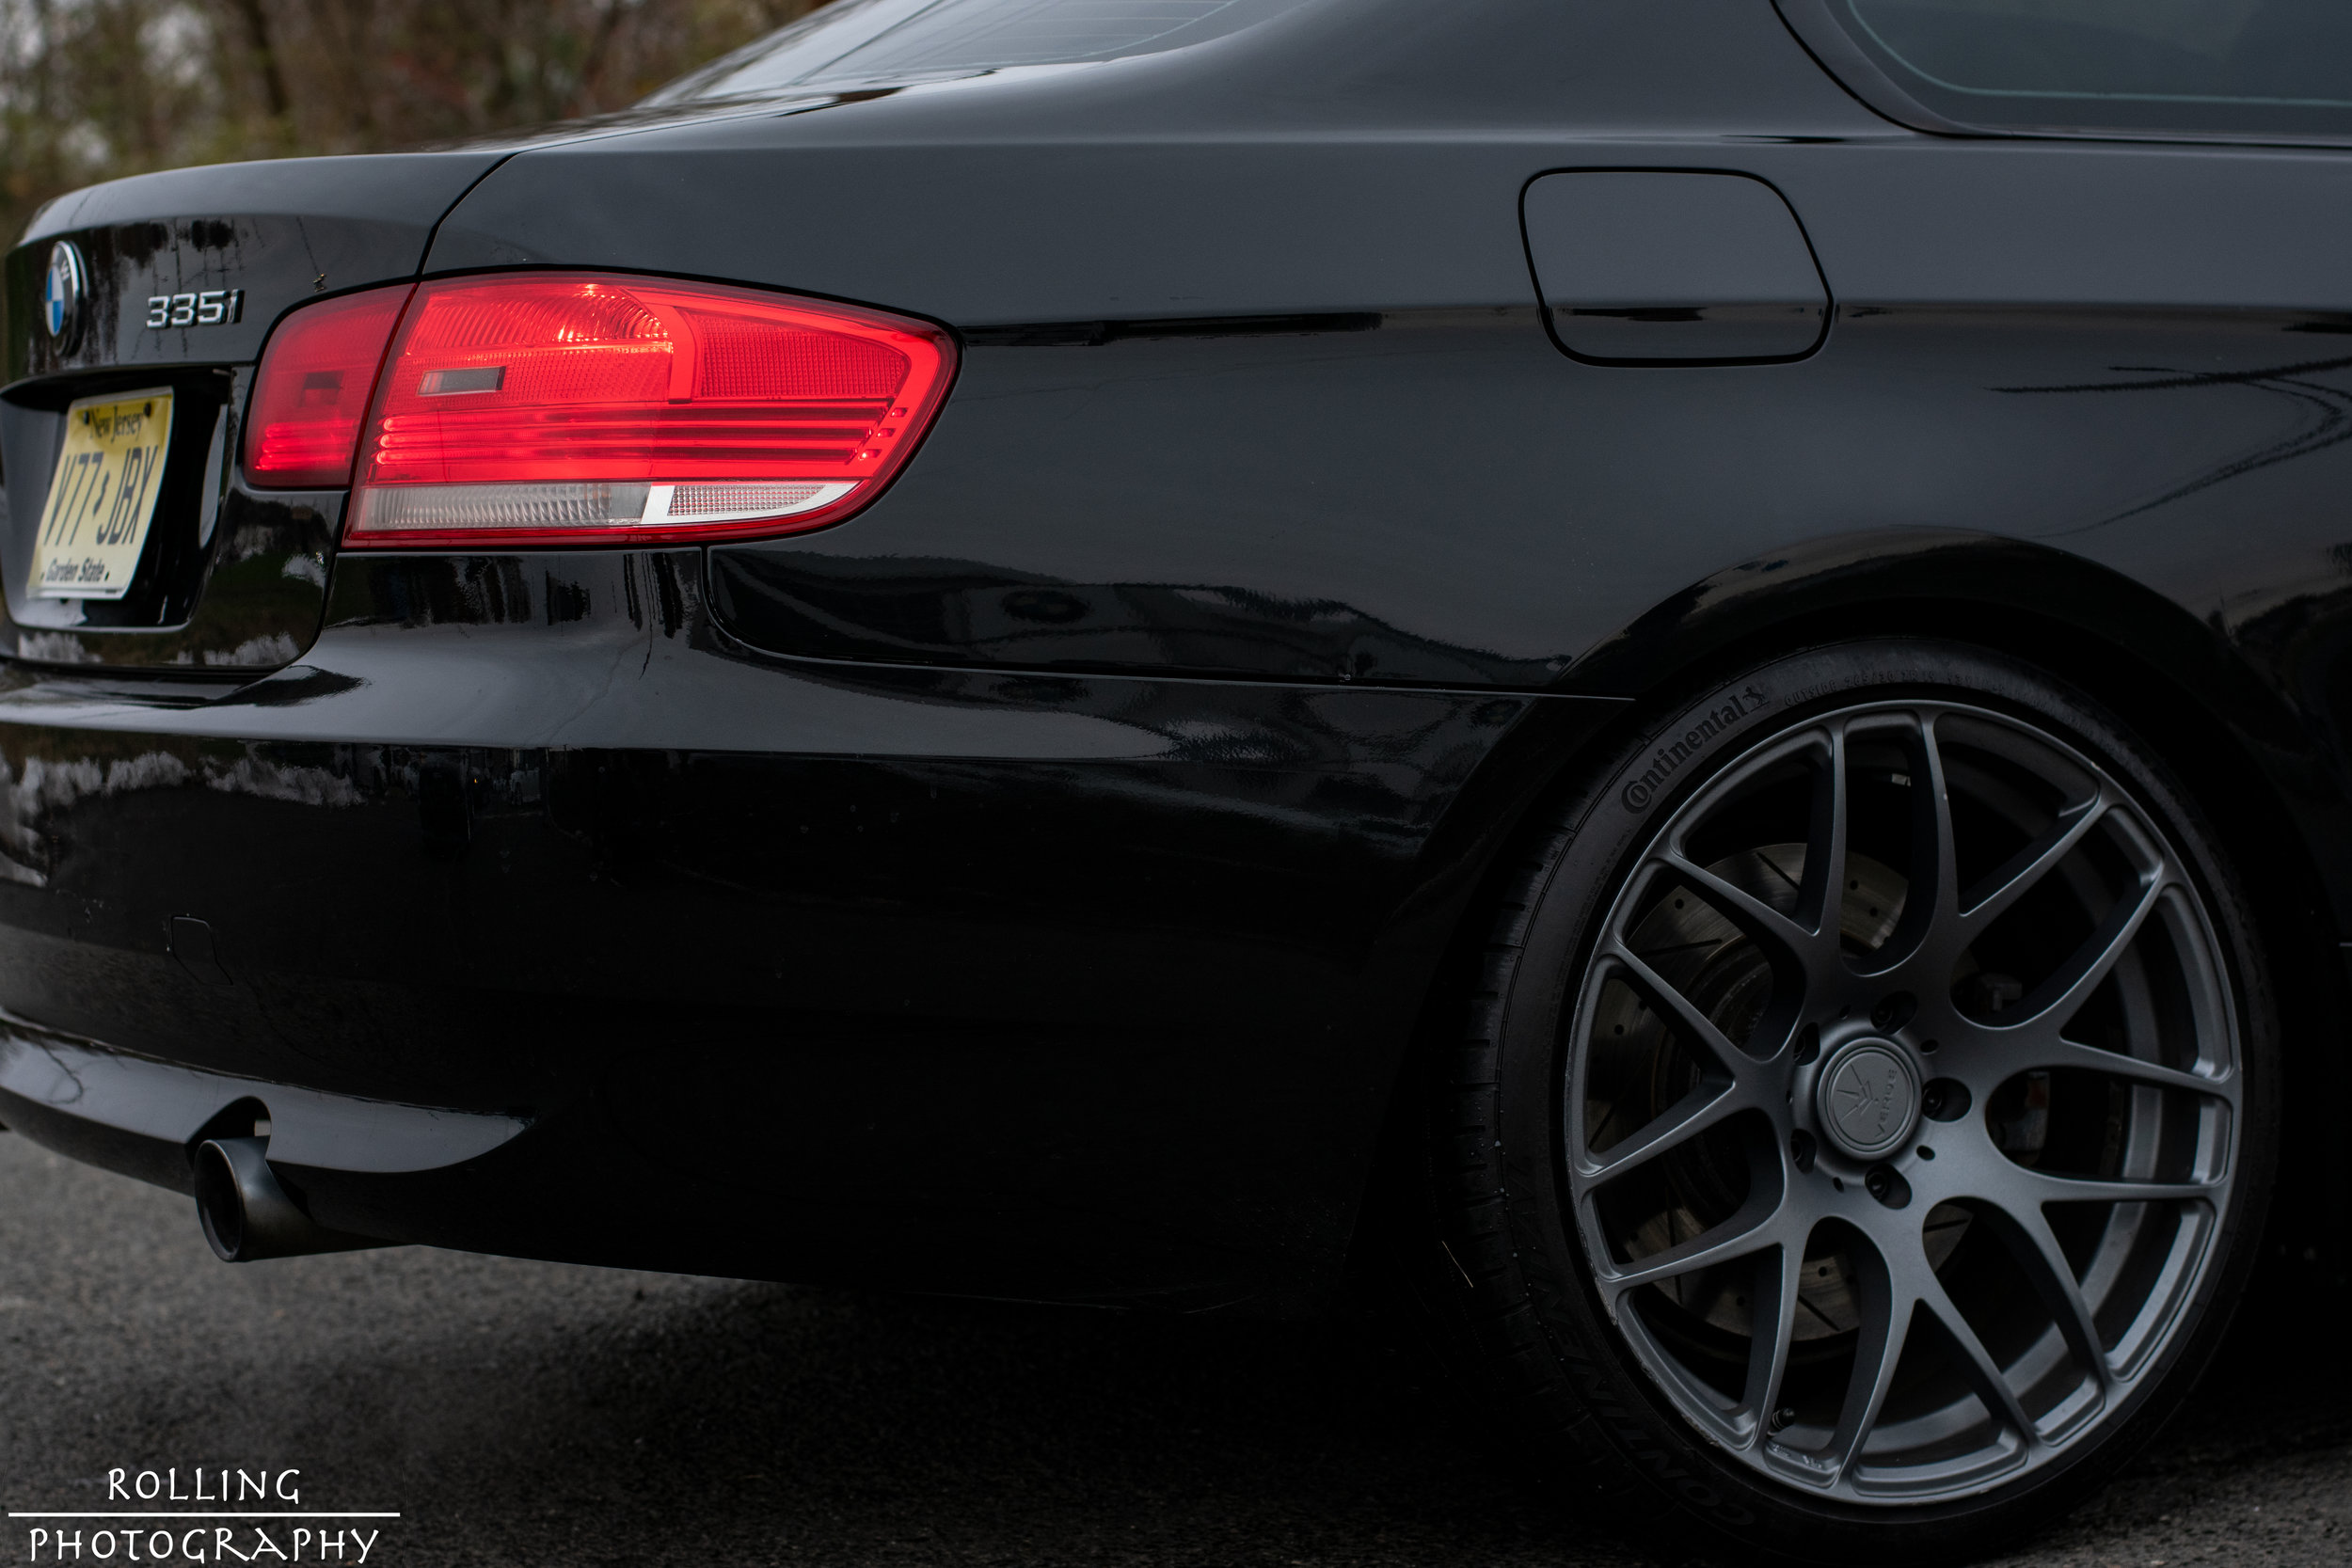 BMW 335i (E92)  ISO 200, 50mm, f / 4.5 Shutter Speed 1/640